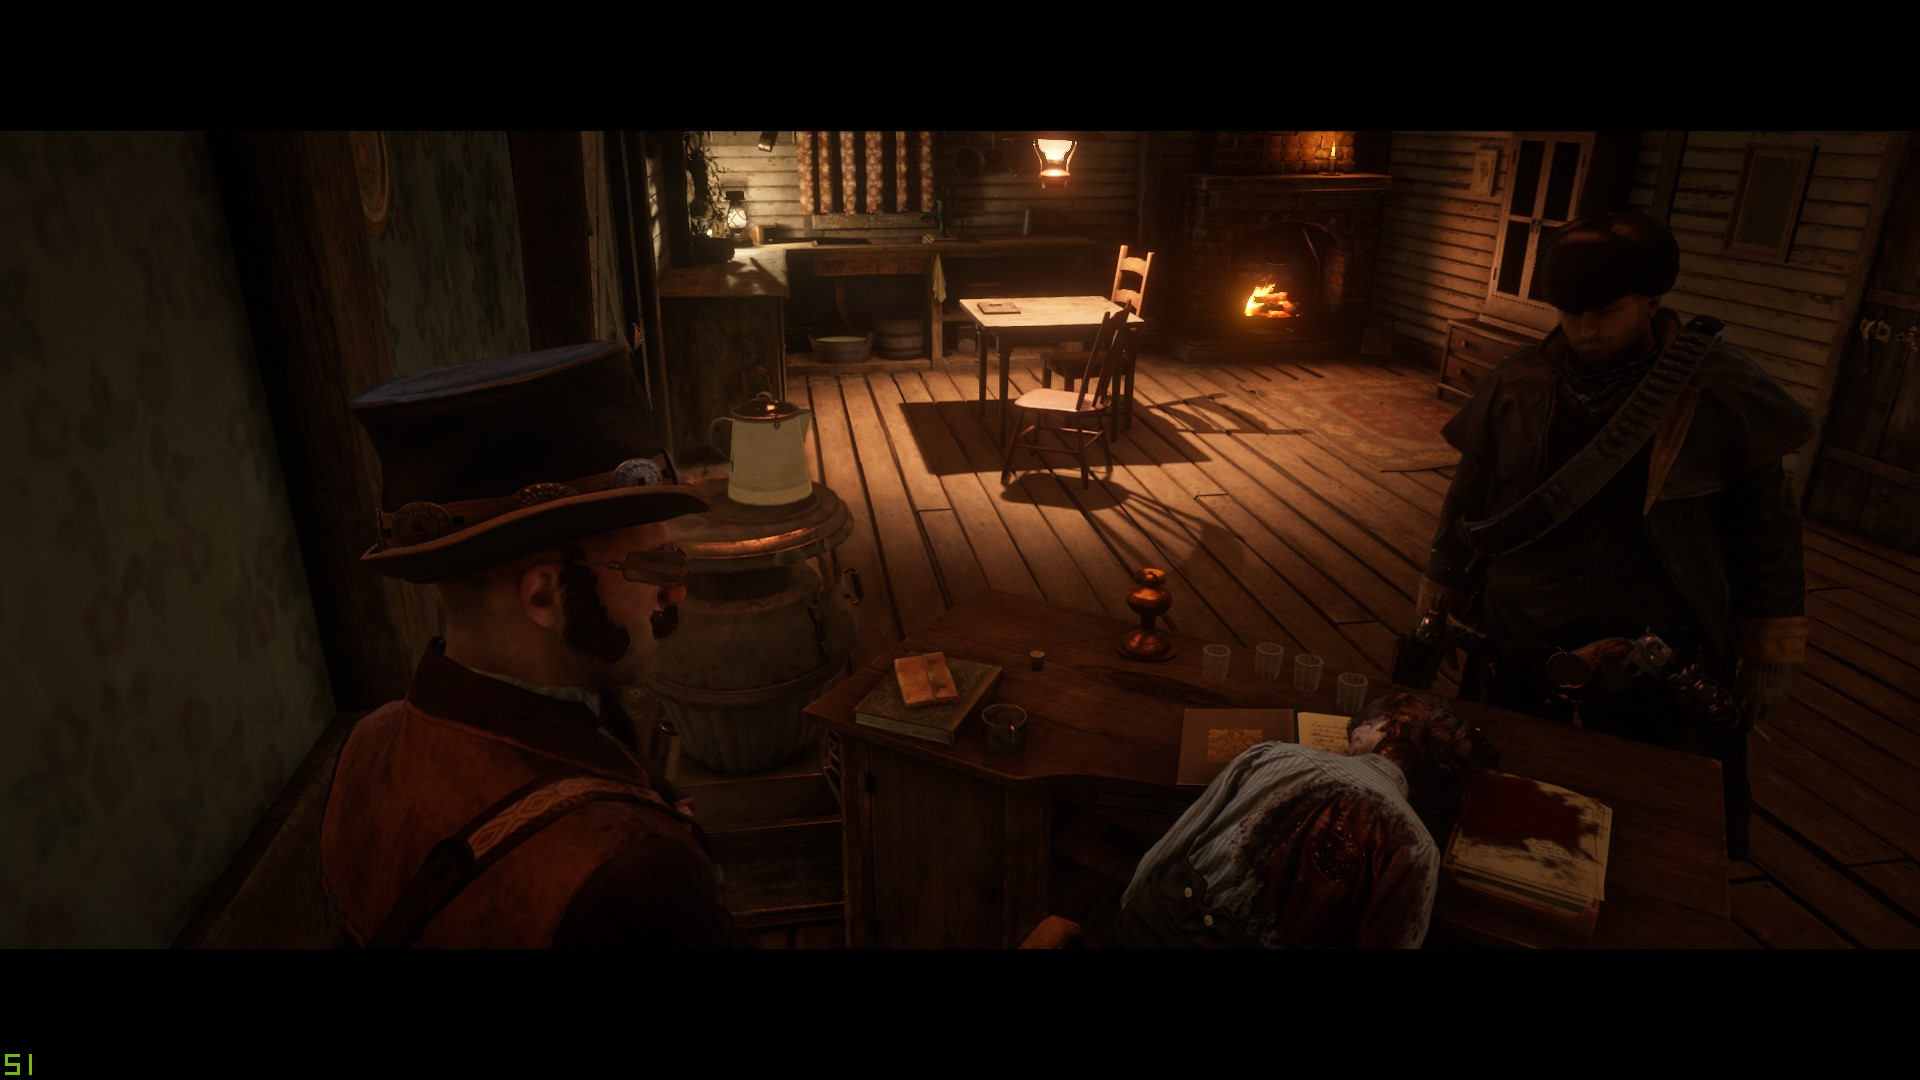 Maggie is dead lol - Red Dead Redemption 2